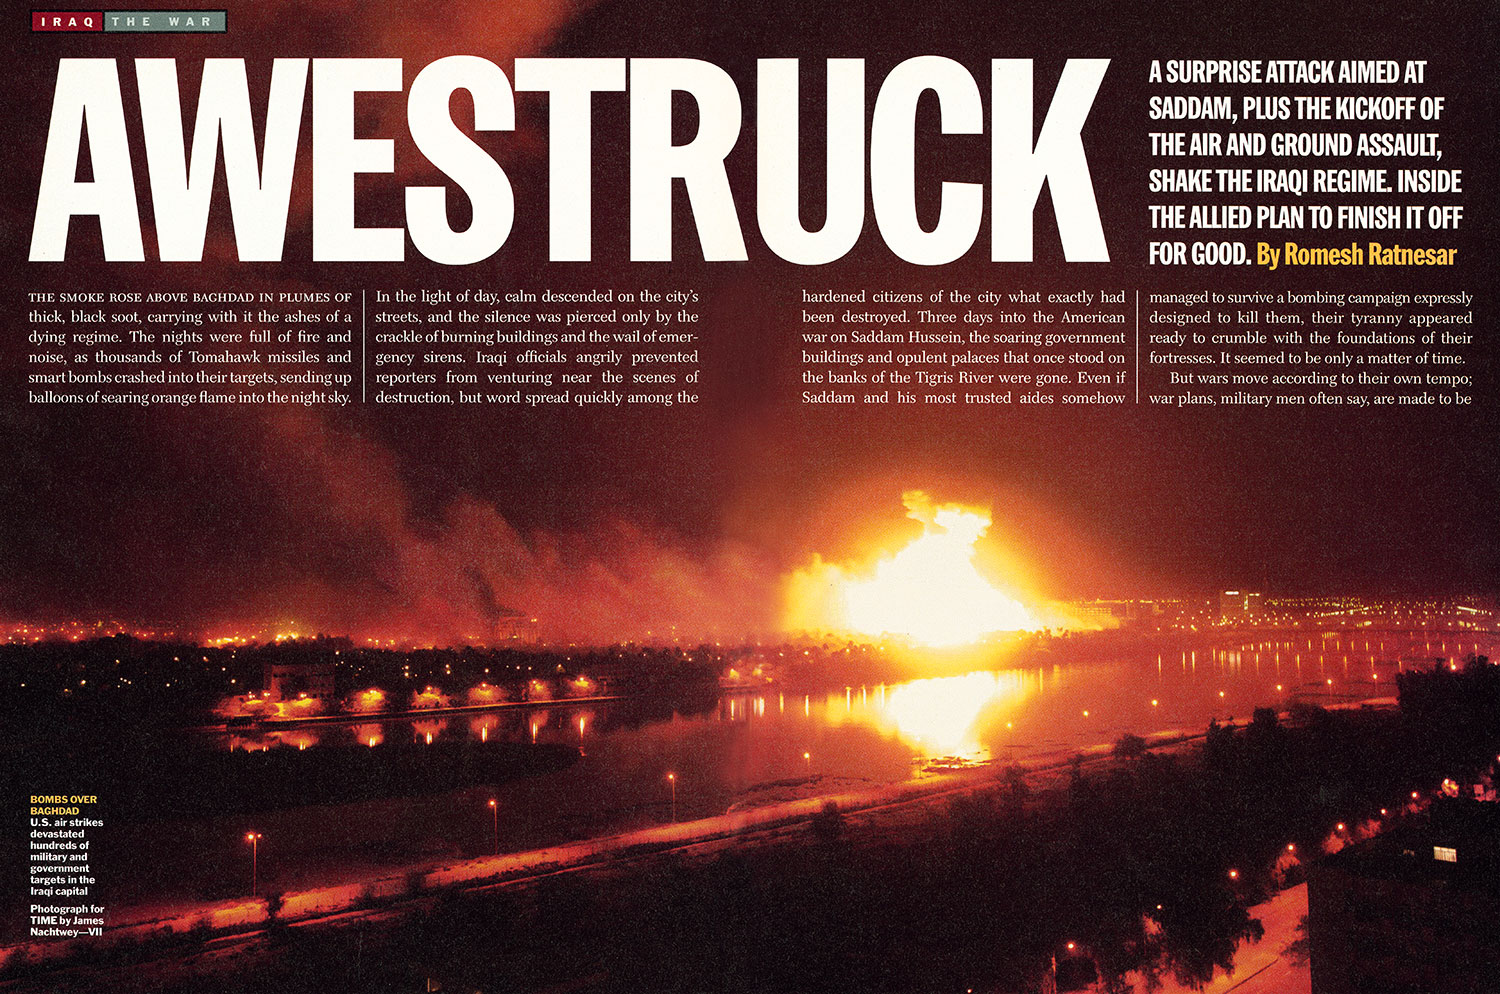 From  Awestruck.  March 31, 2003 issue.